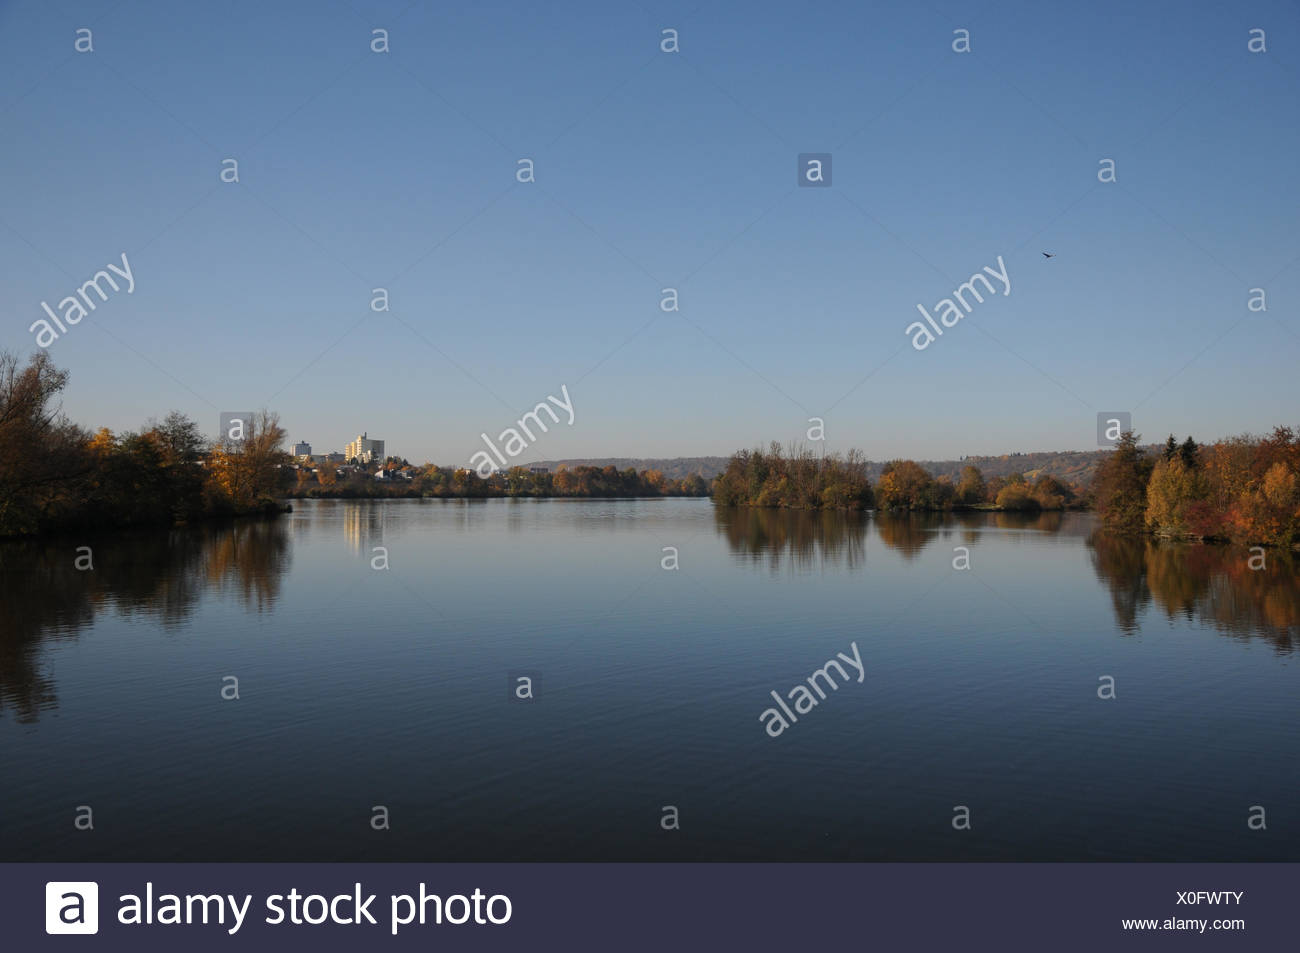 The river Naab, streaming into Danube - Stock Image